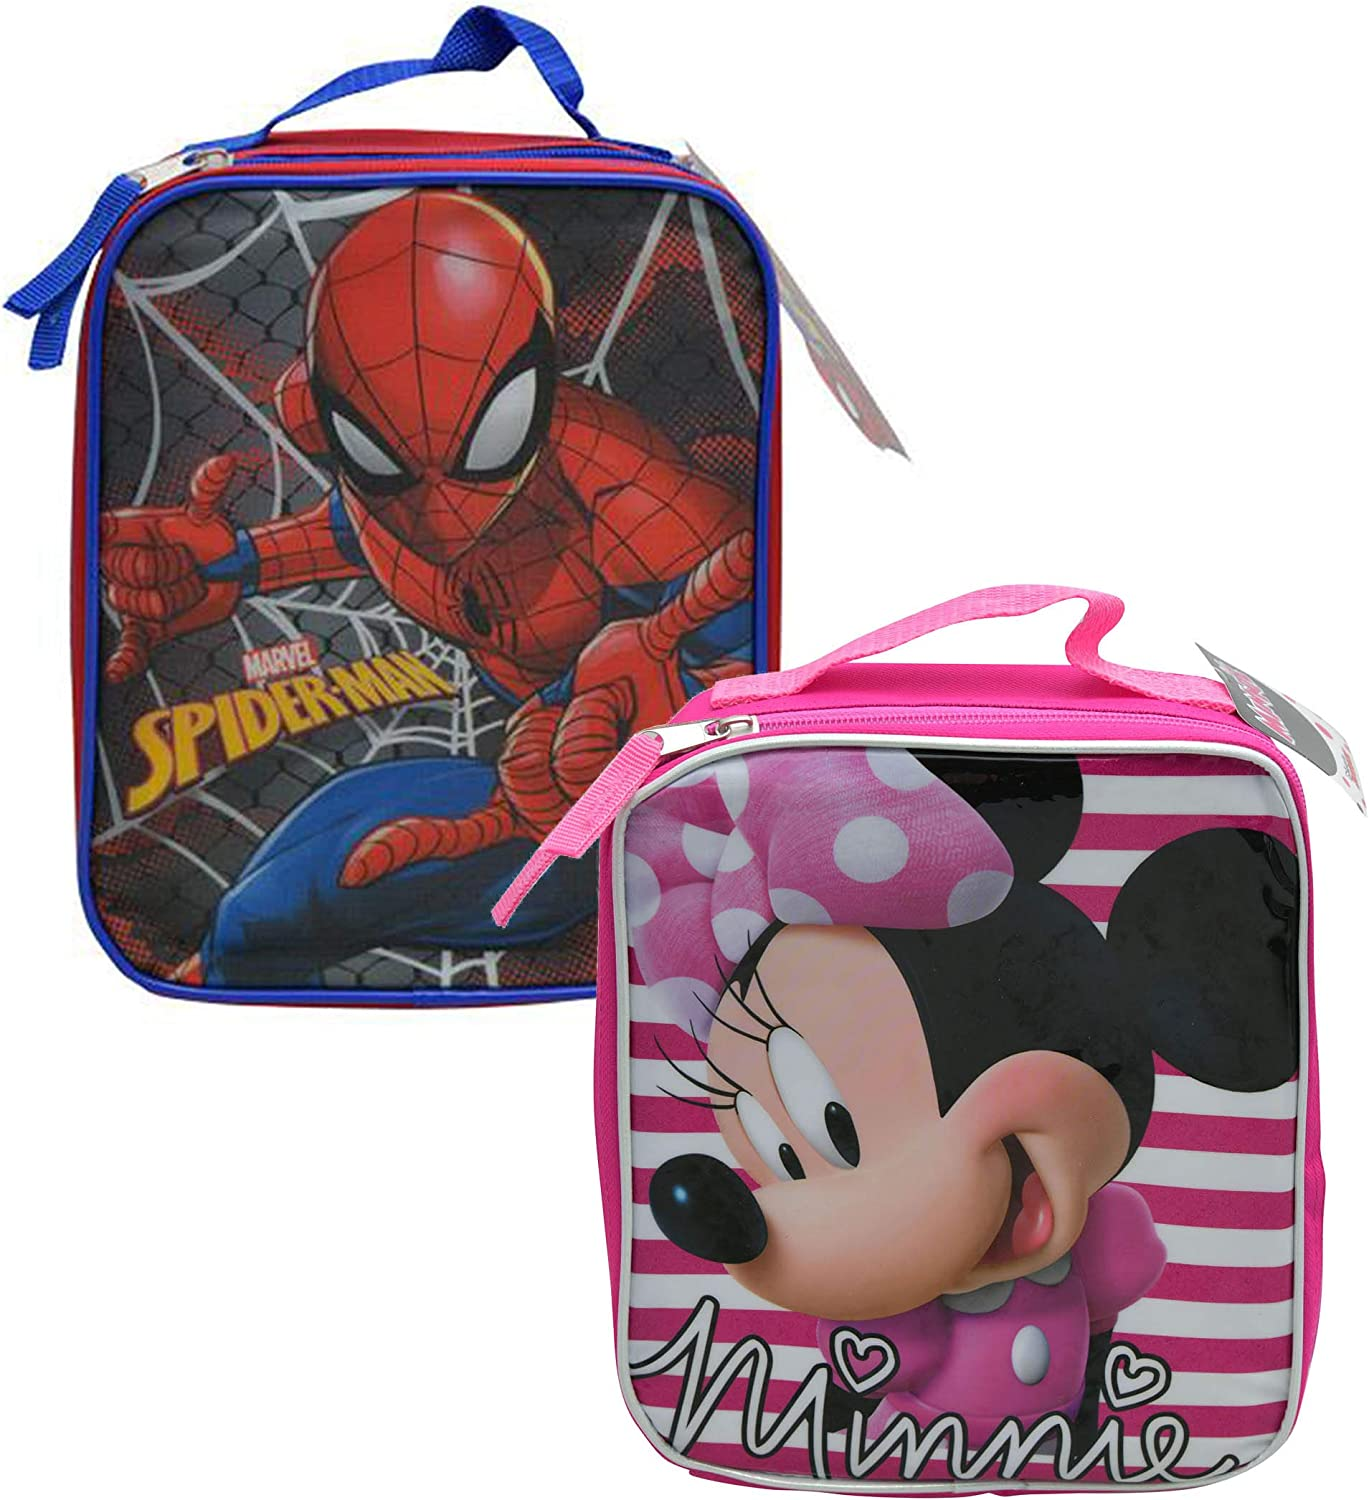 Disney Minnie Mouse Deluxe Bow-Tique Girls Backpack and Lunch Bag Set for Kids